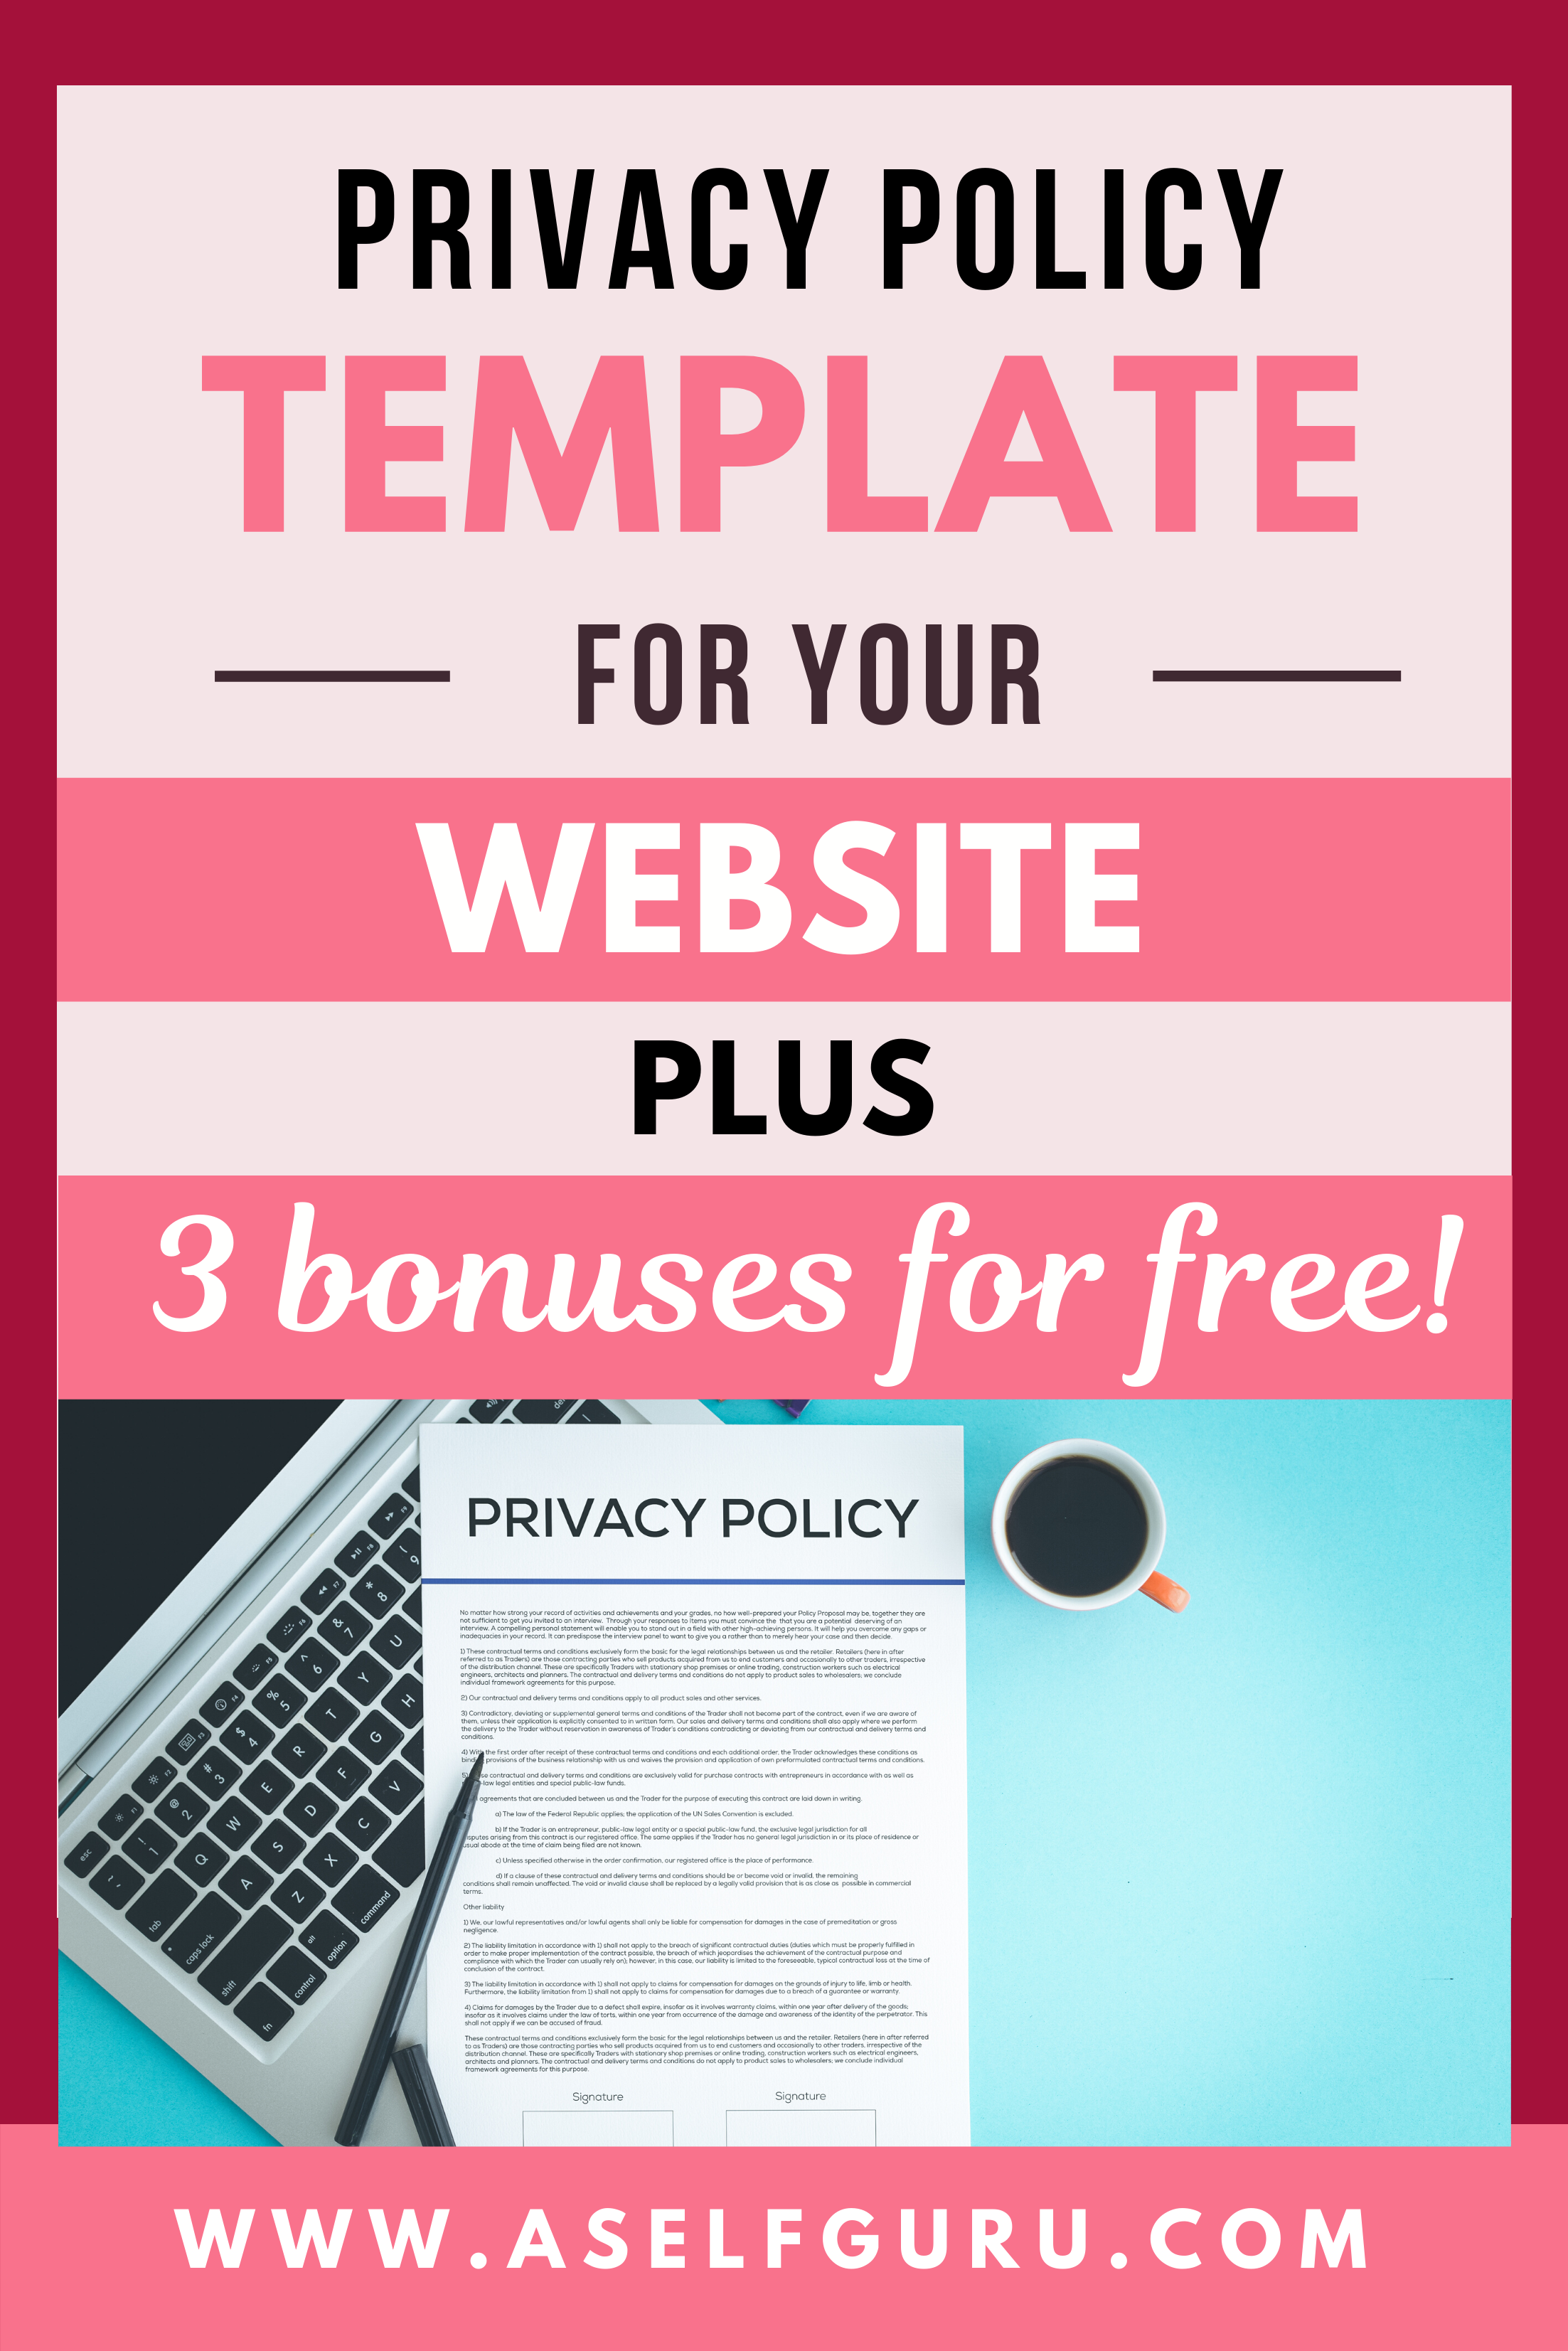 Privacy Policy Template Policy Template Business Blog Blog Legal